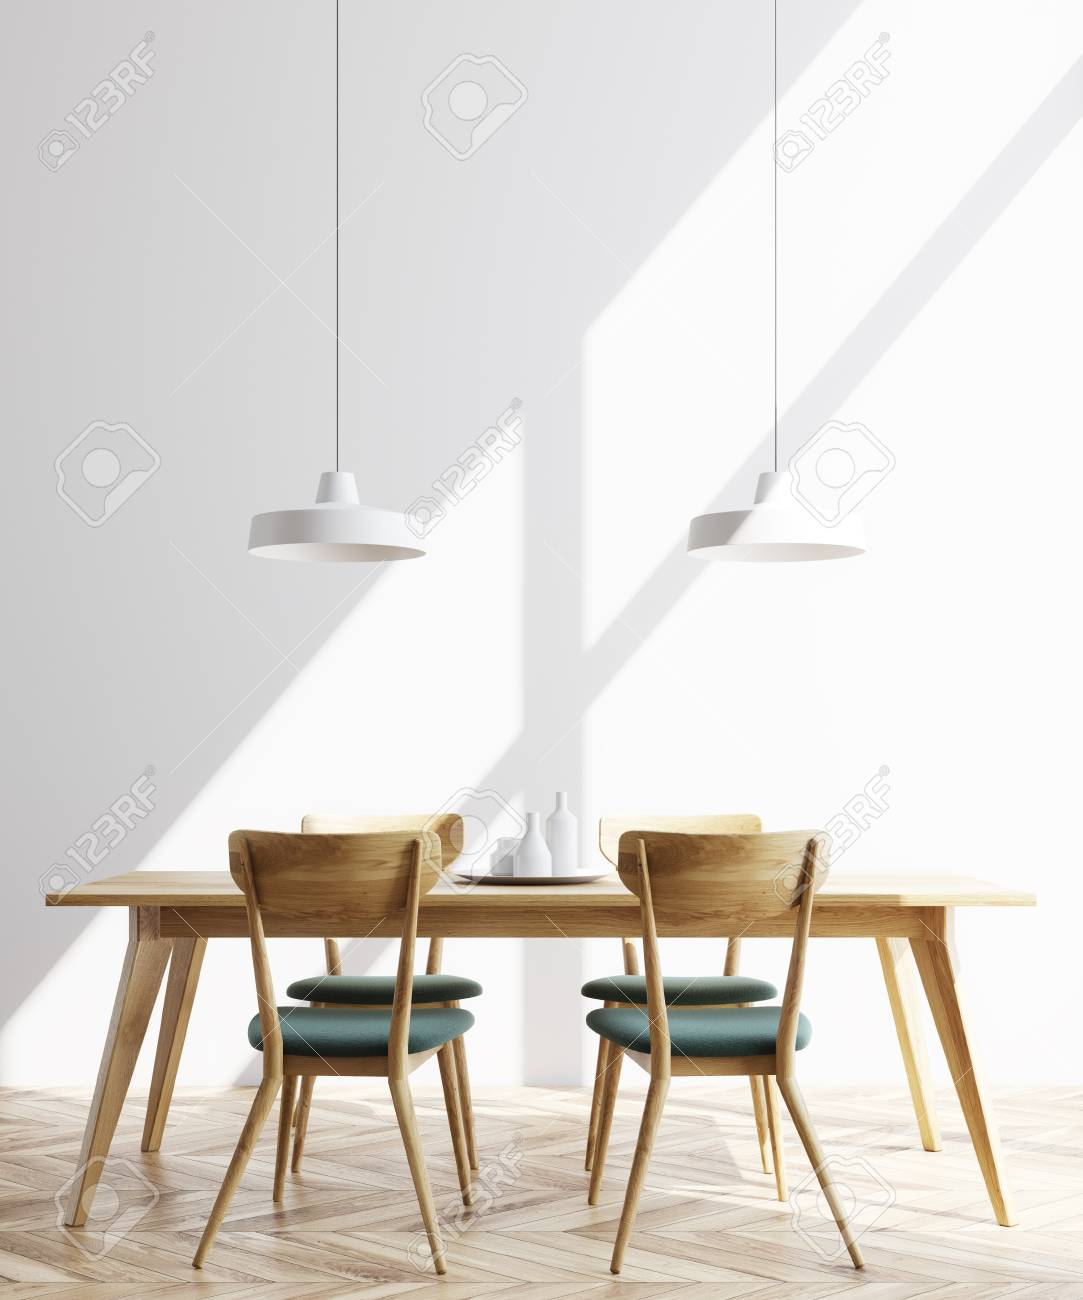 Modern Minimalistic Dining Room Interior With White Walls, A Wooden Floor  And A Long Table